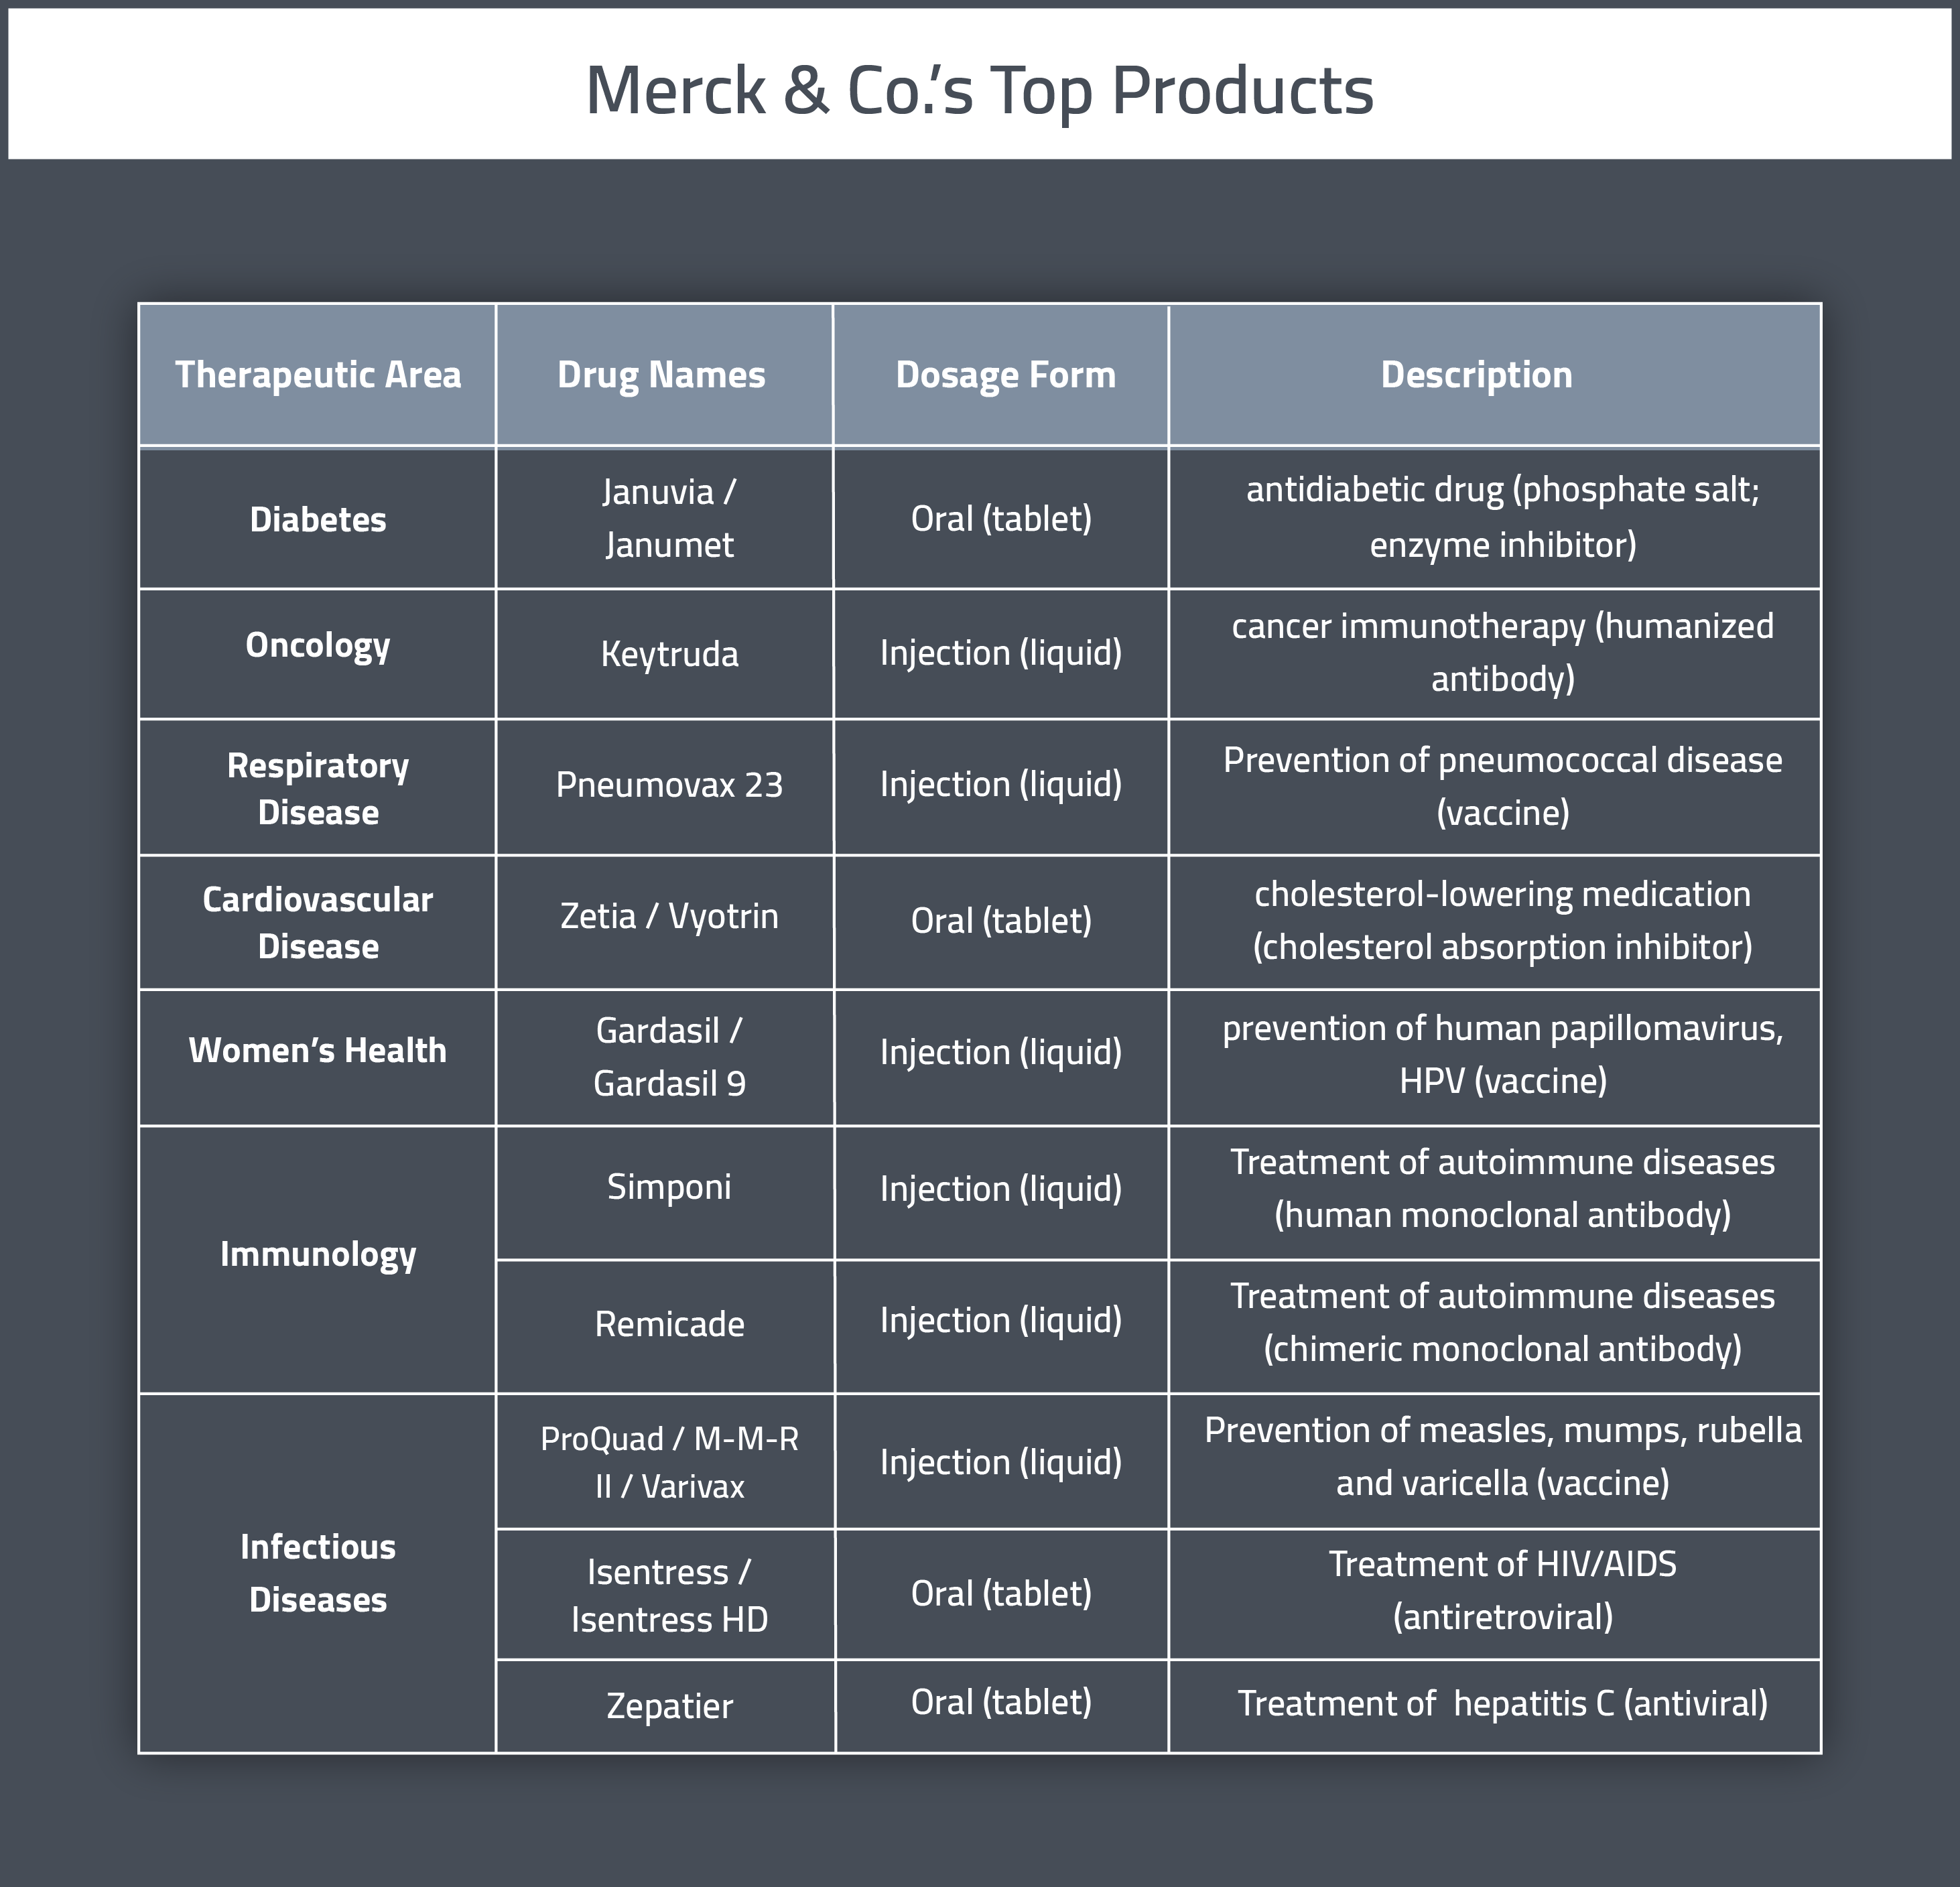 Merck & Co's top pharmaceutical products